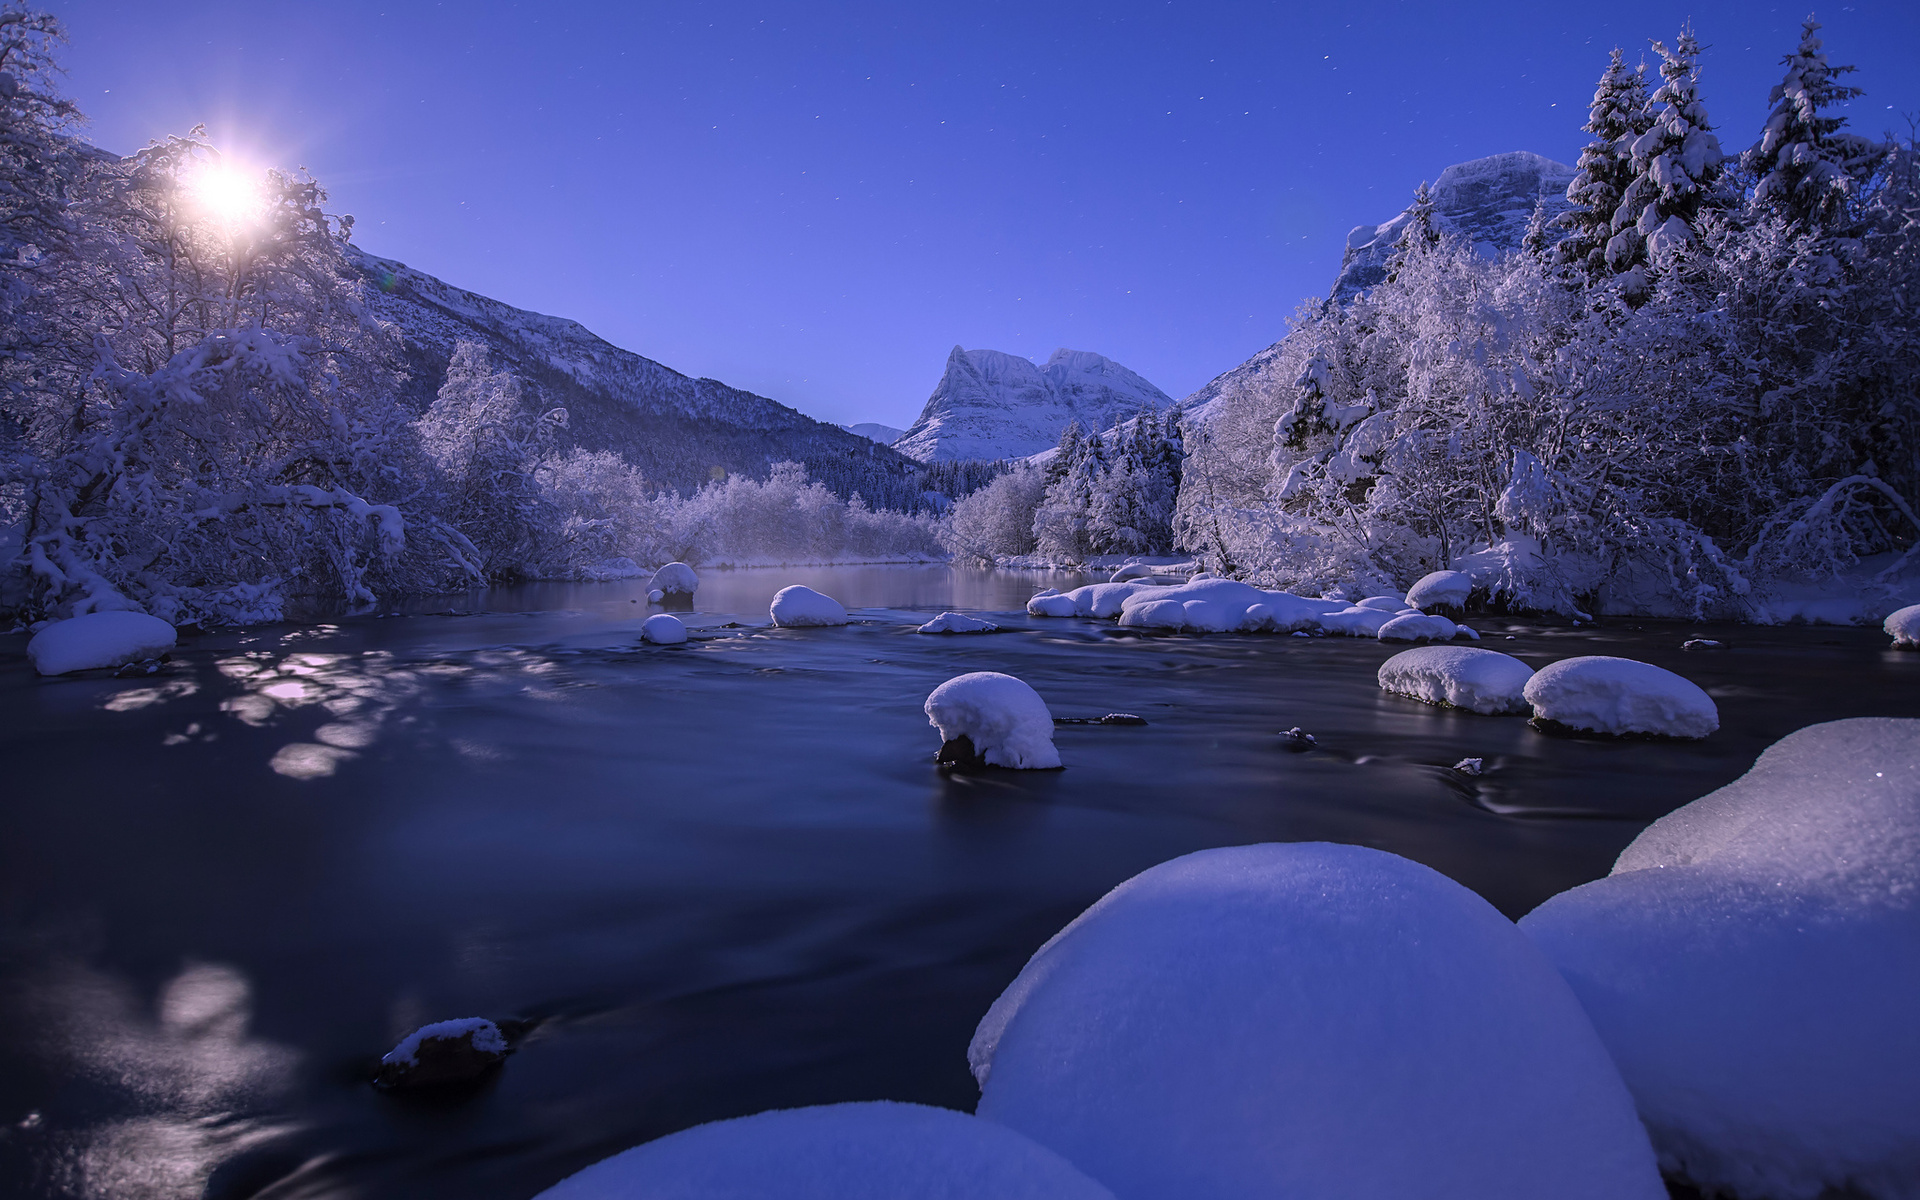 nature landscapes river streams mountains night moonlight moon sky winter snow seasons trees forest